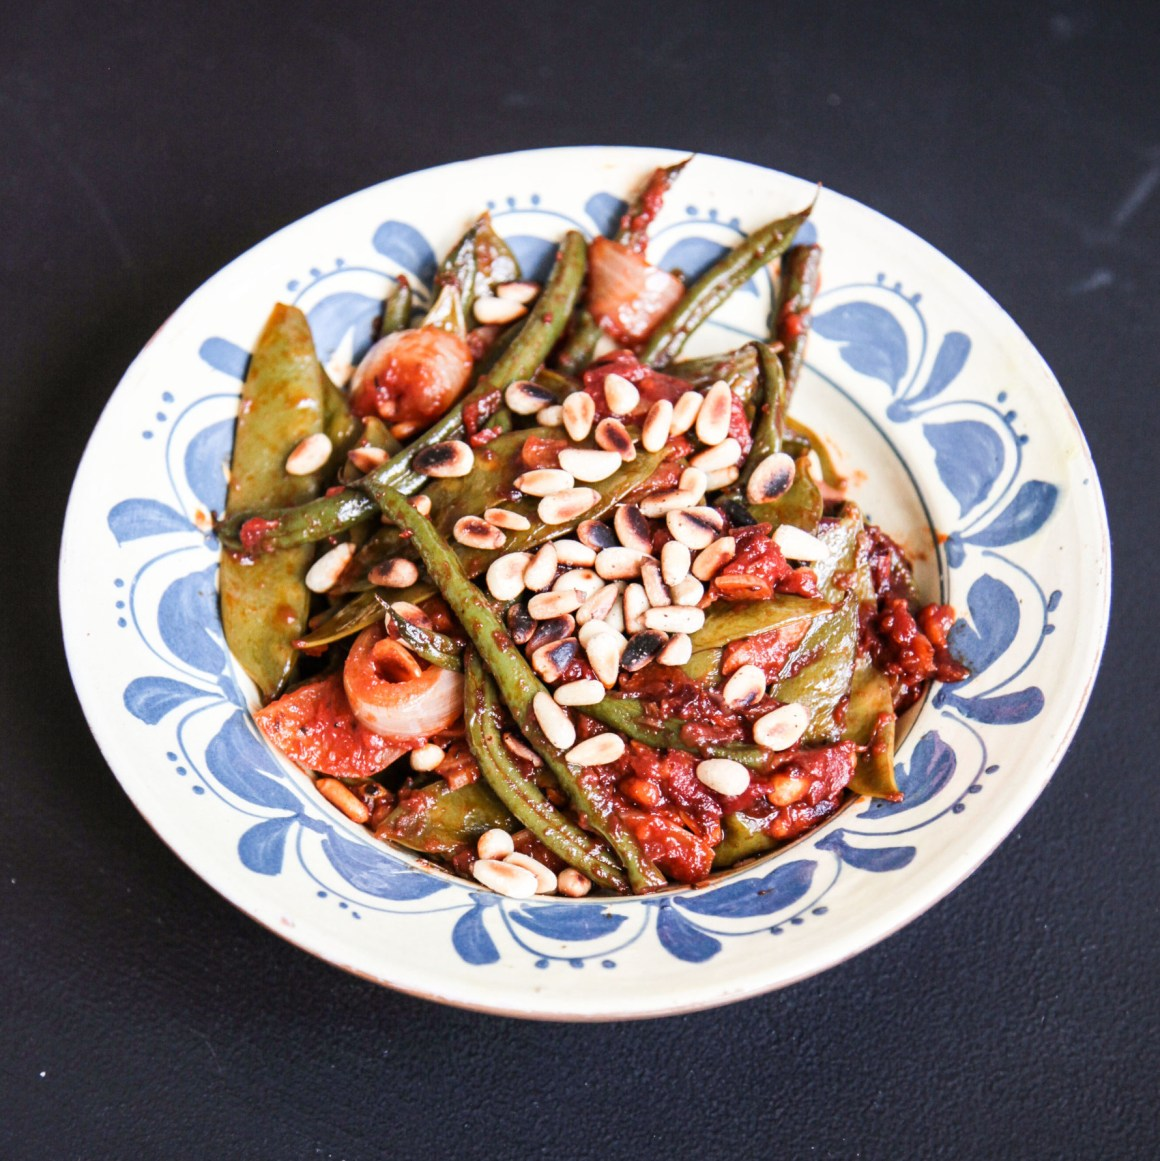 Green Beans and Mange Tout Peas, Mediterranean Style